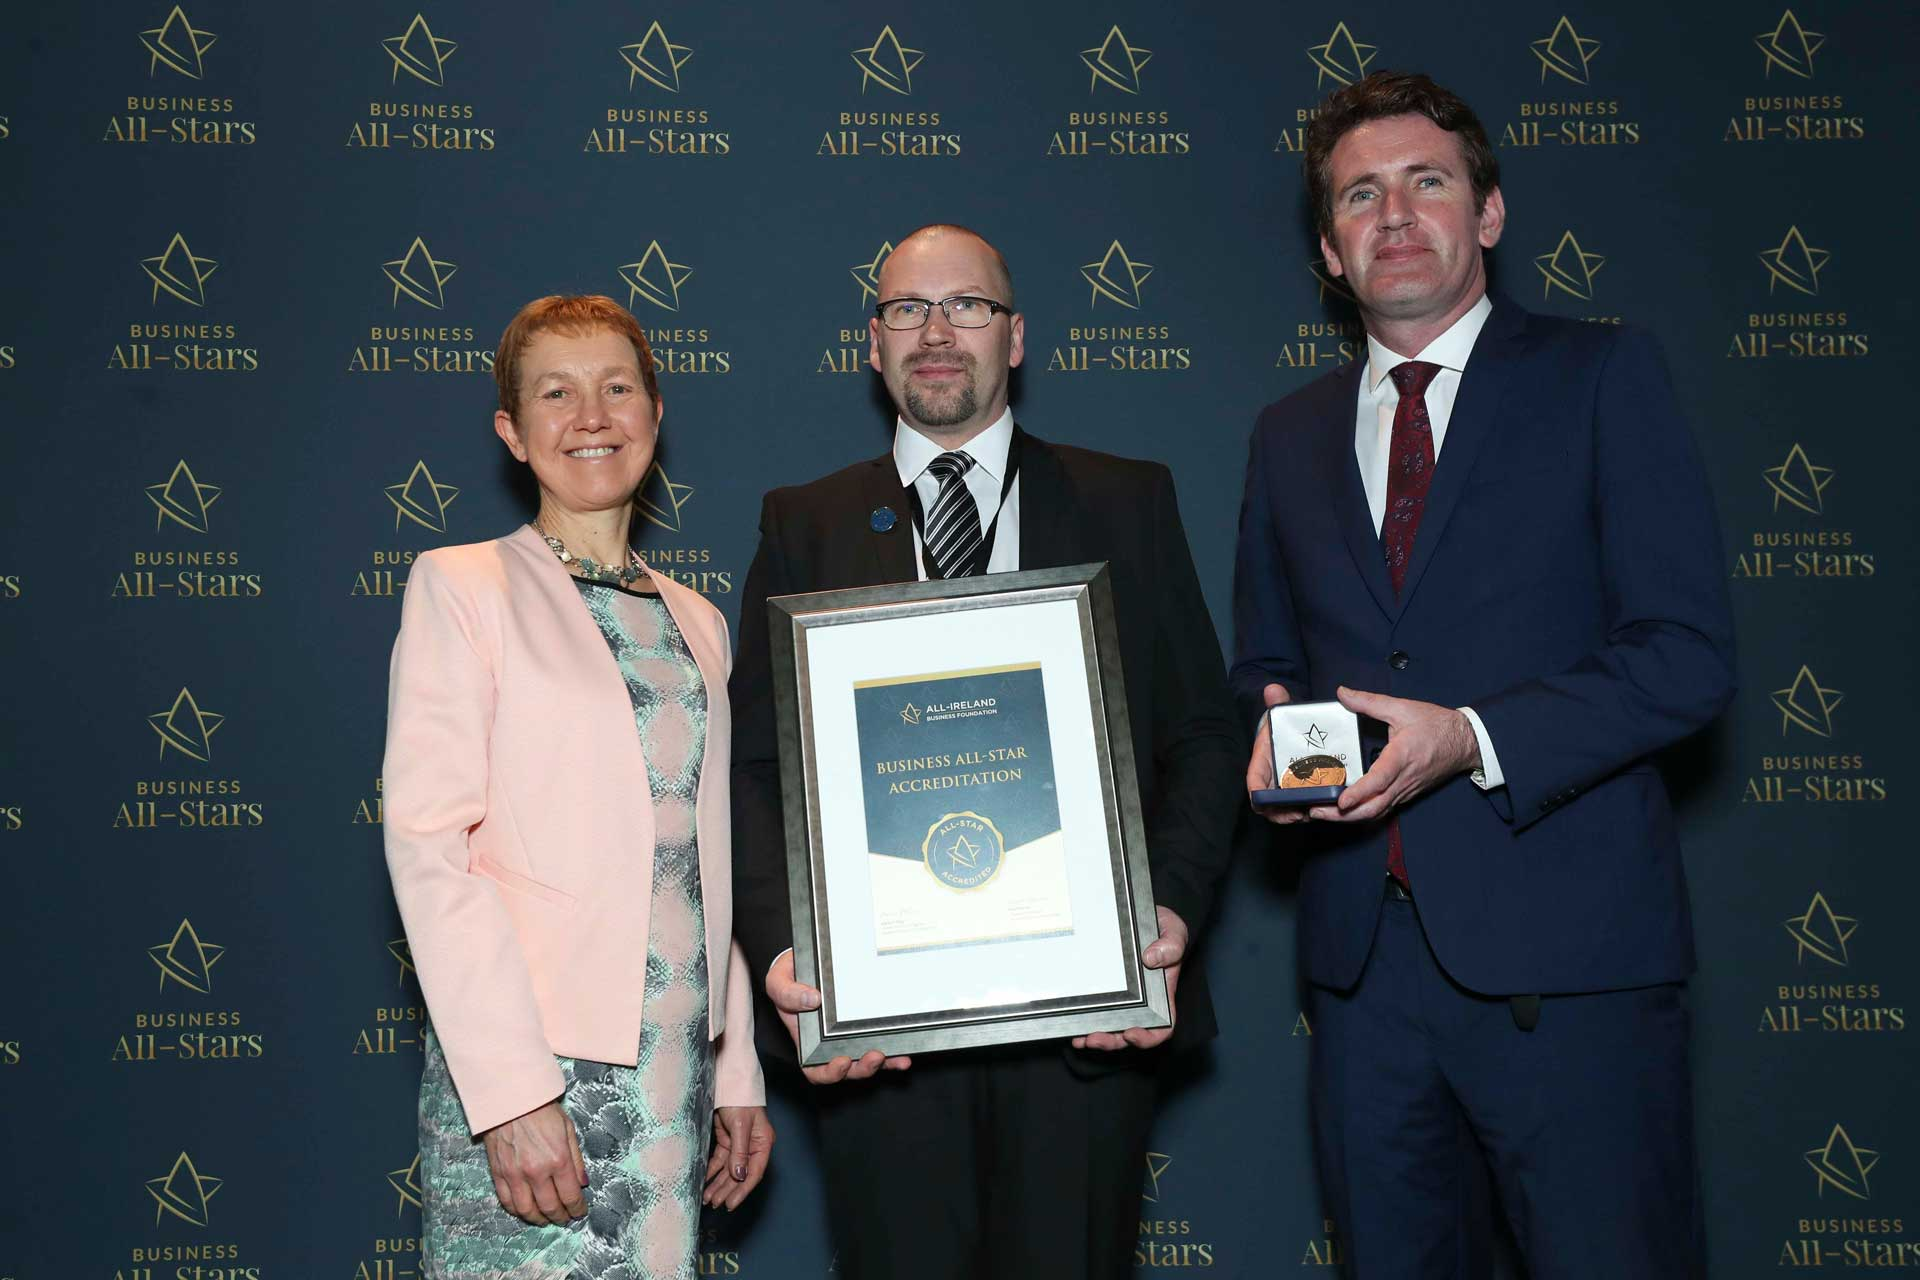 Albertas Kukys, SkyTech receiving Business All-Star Accreditation at Croke Park from Dr Briga Hynes, Kemmy Business School, University of Limerick and Senator Aodhán Ó Ríordáin, Spokesperson on Education and Skills, Gaeilge and the Gaeltacht.